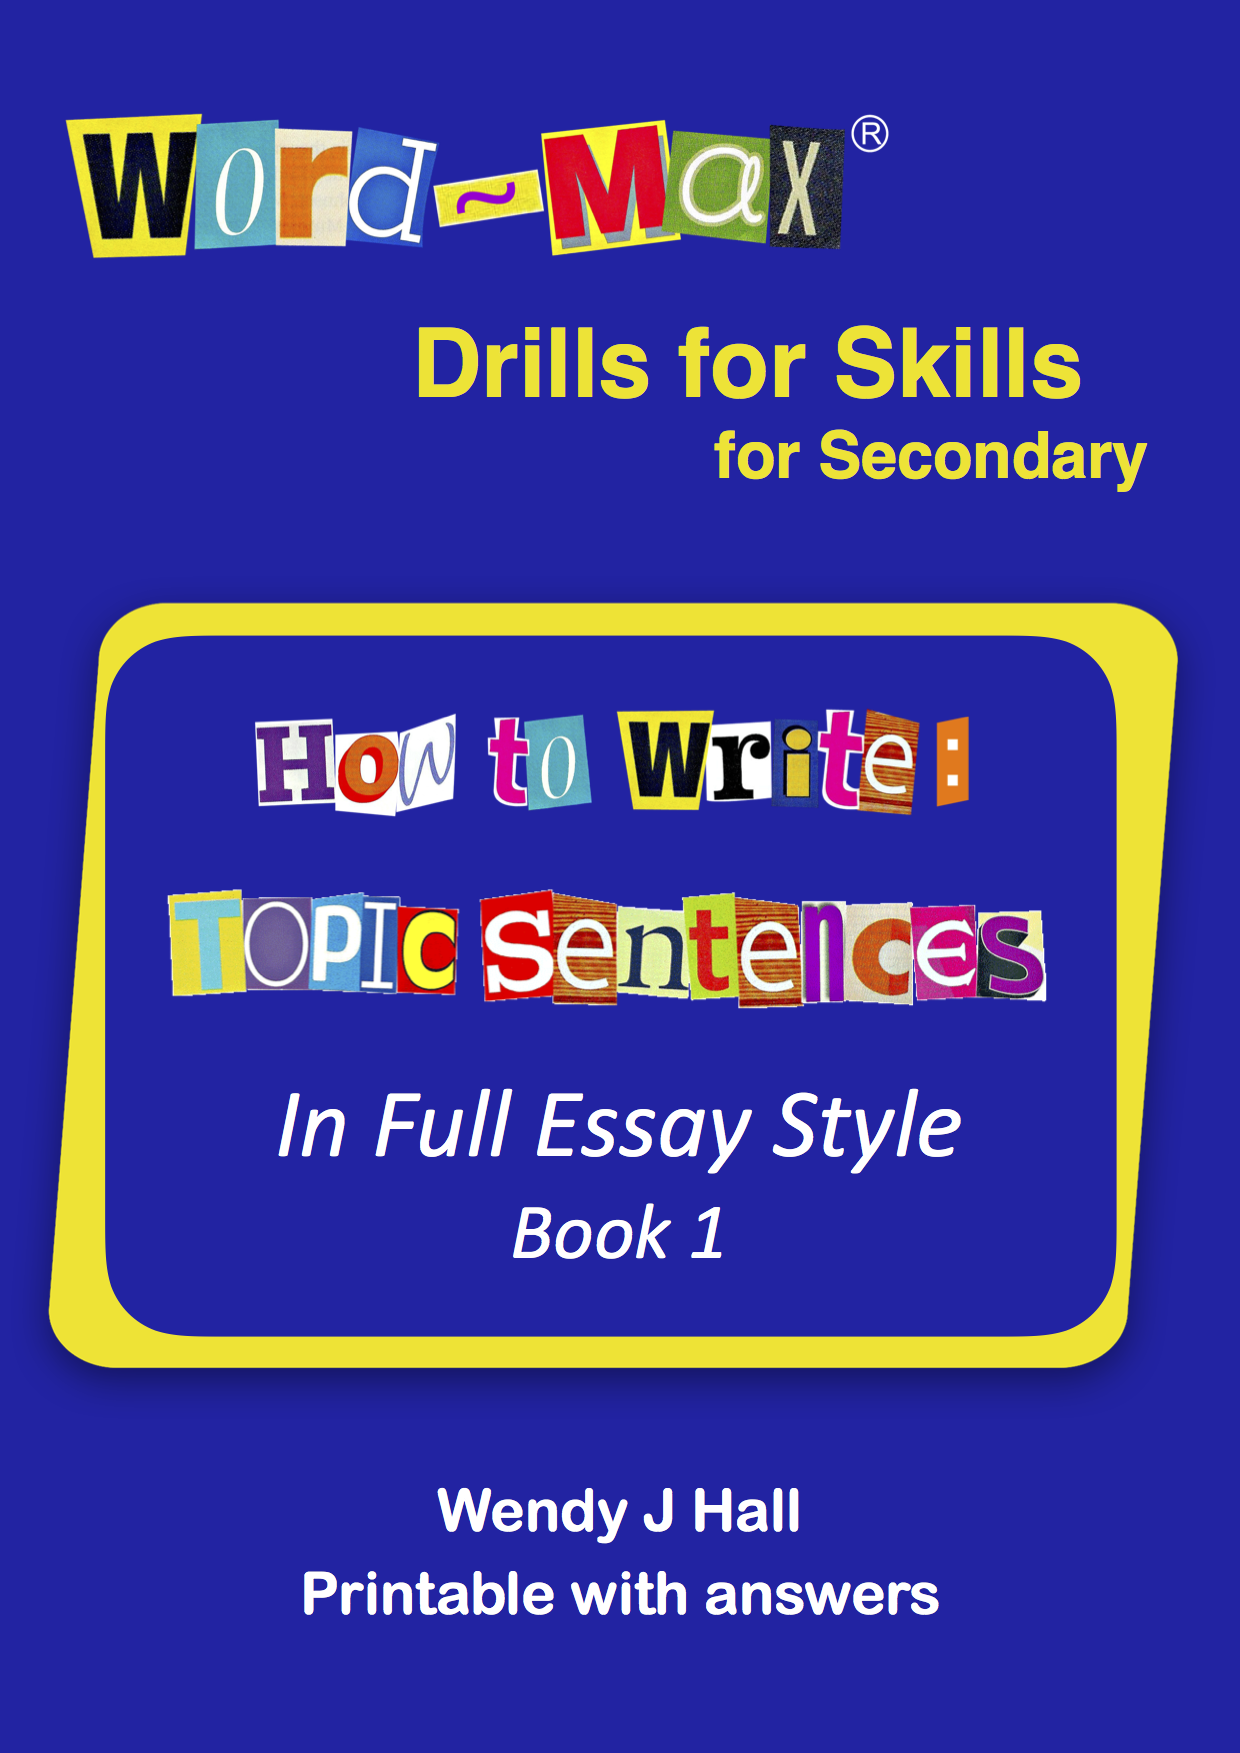 Word-Max | Drills for Skills for Secondary - How to write: Topic sentences